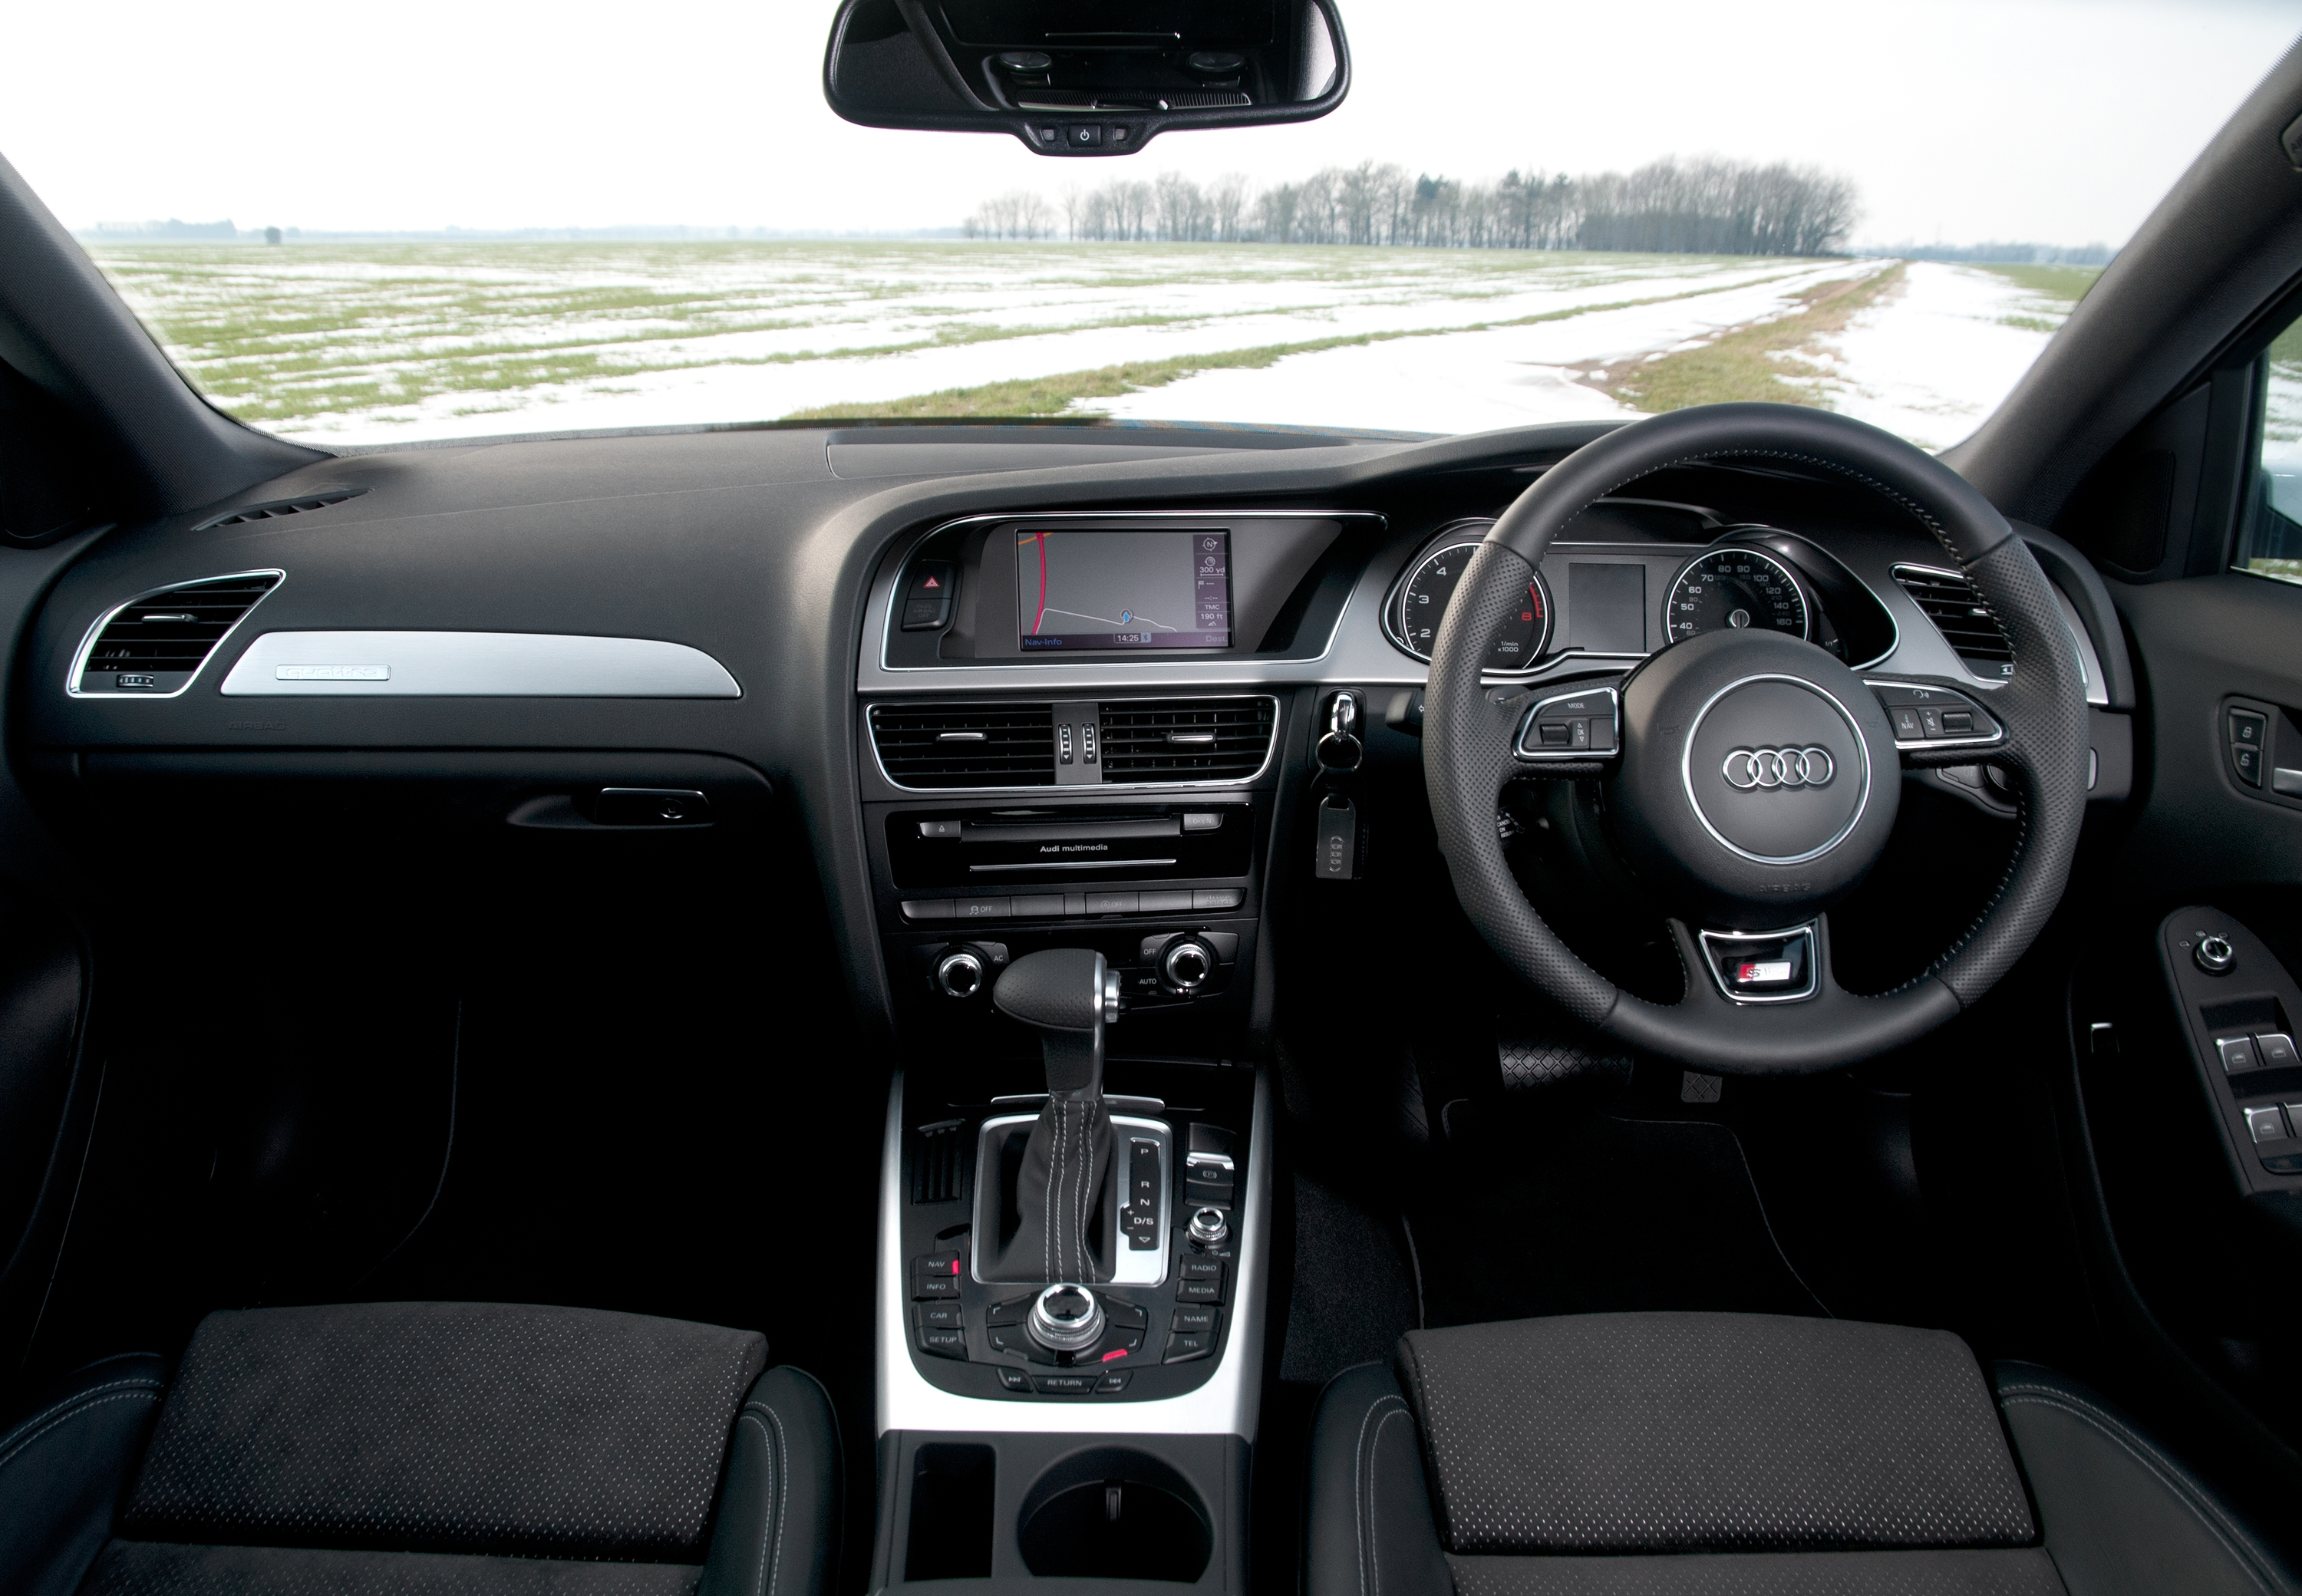 Audi A4 dashboard interior